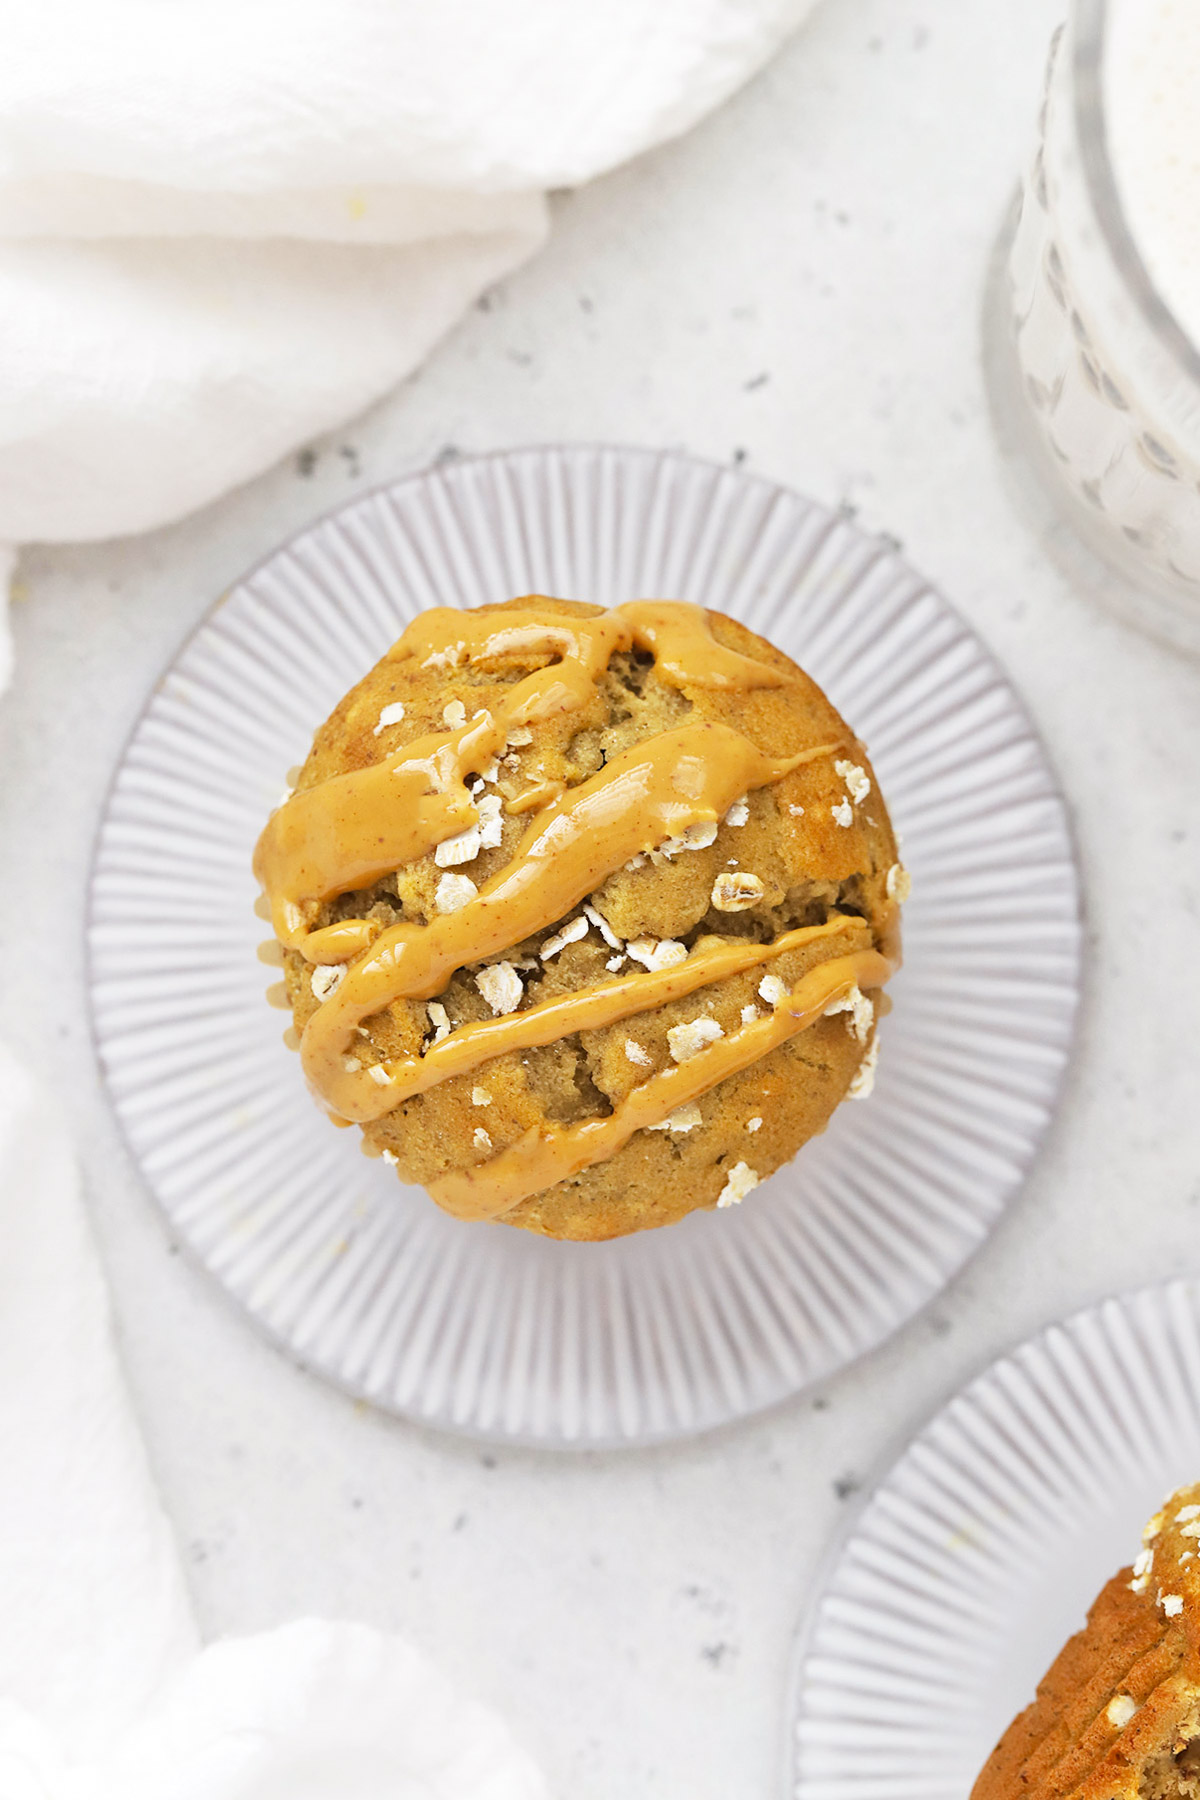 Overhead view of a gluten-free banana muffin drizzled with natural peanut butter